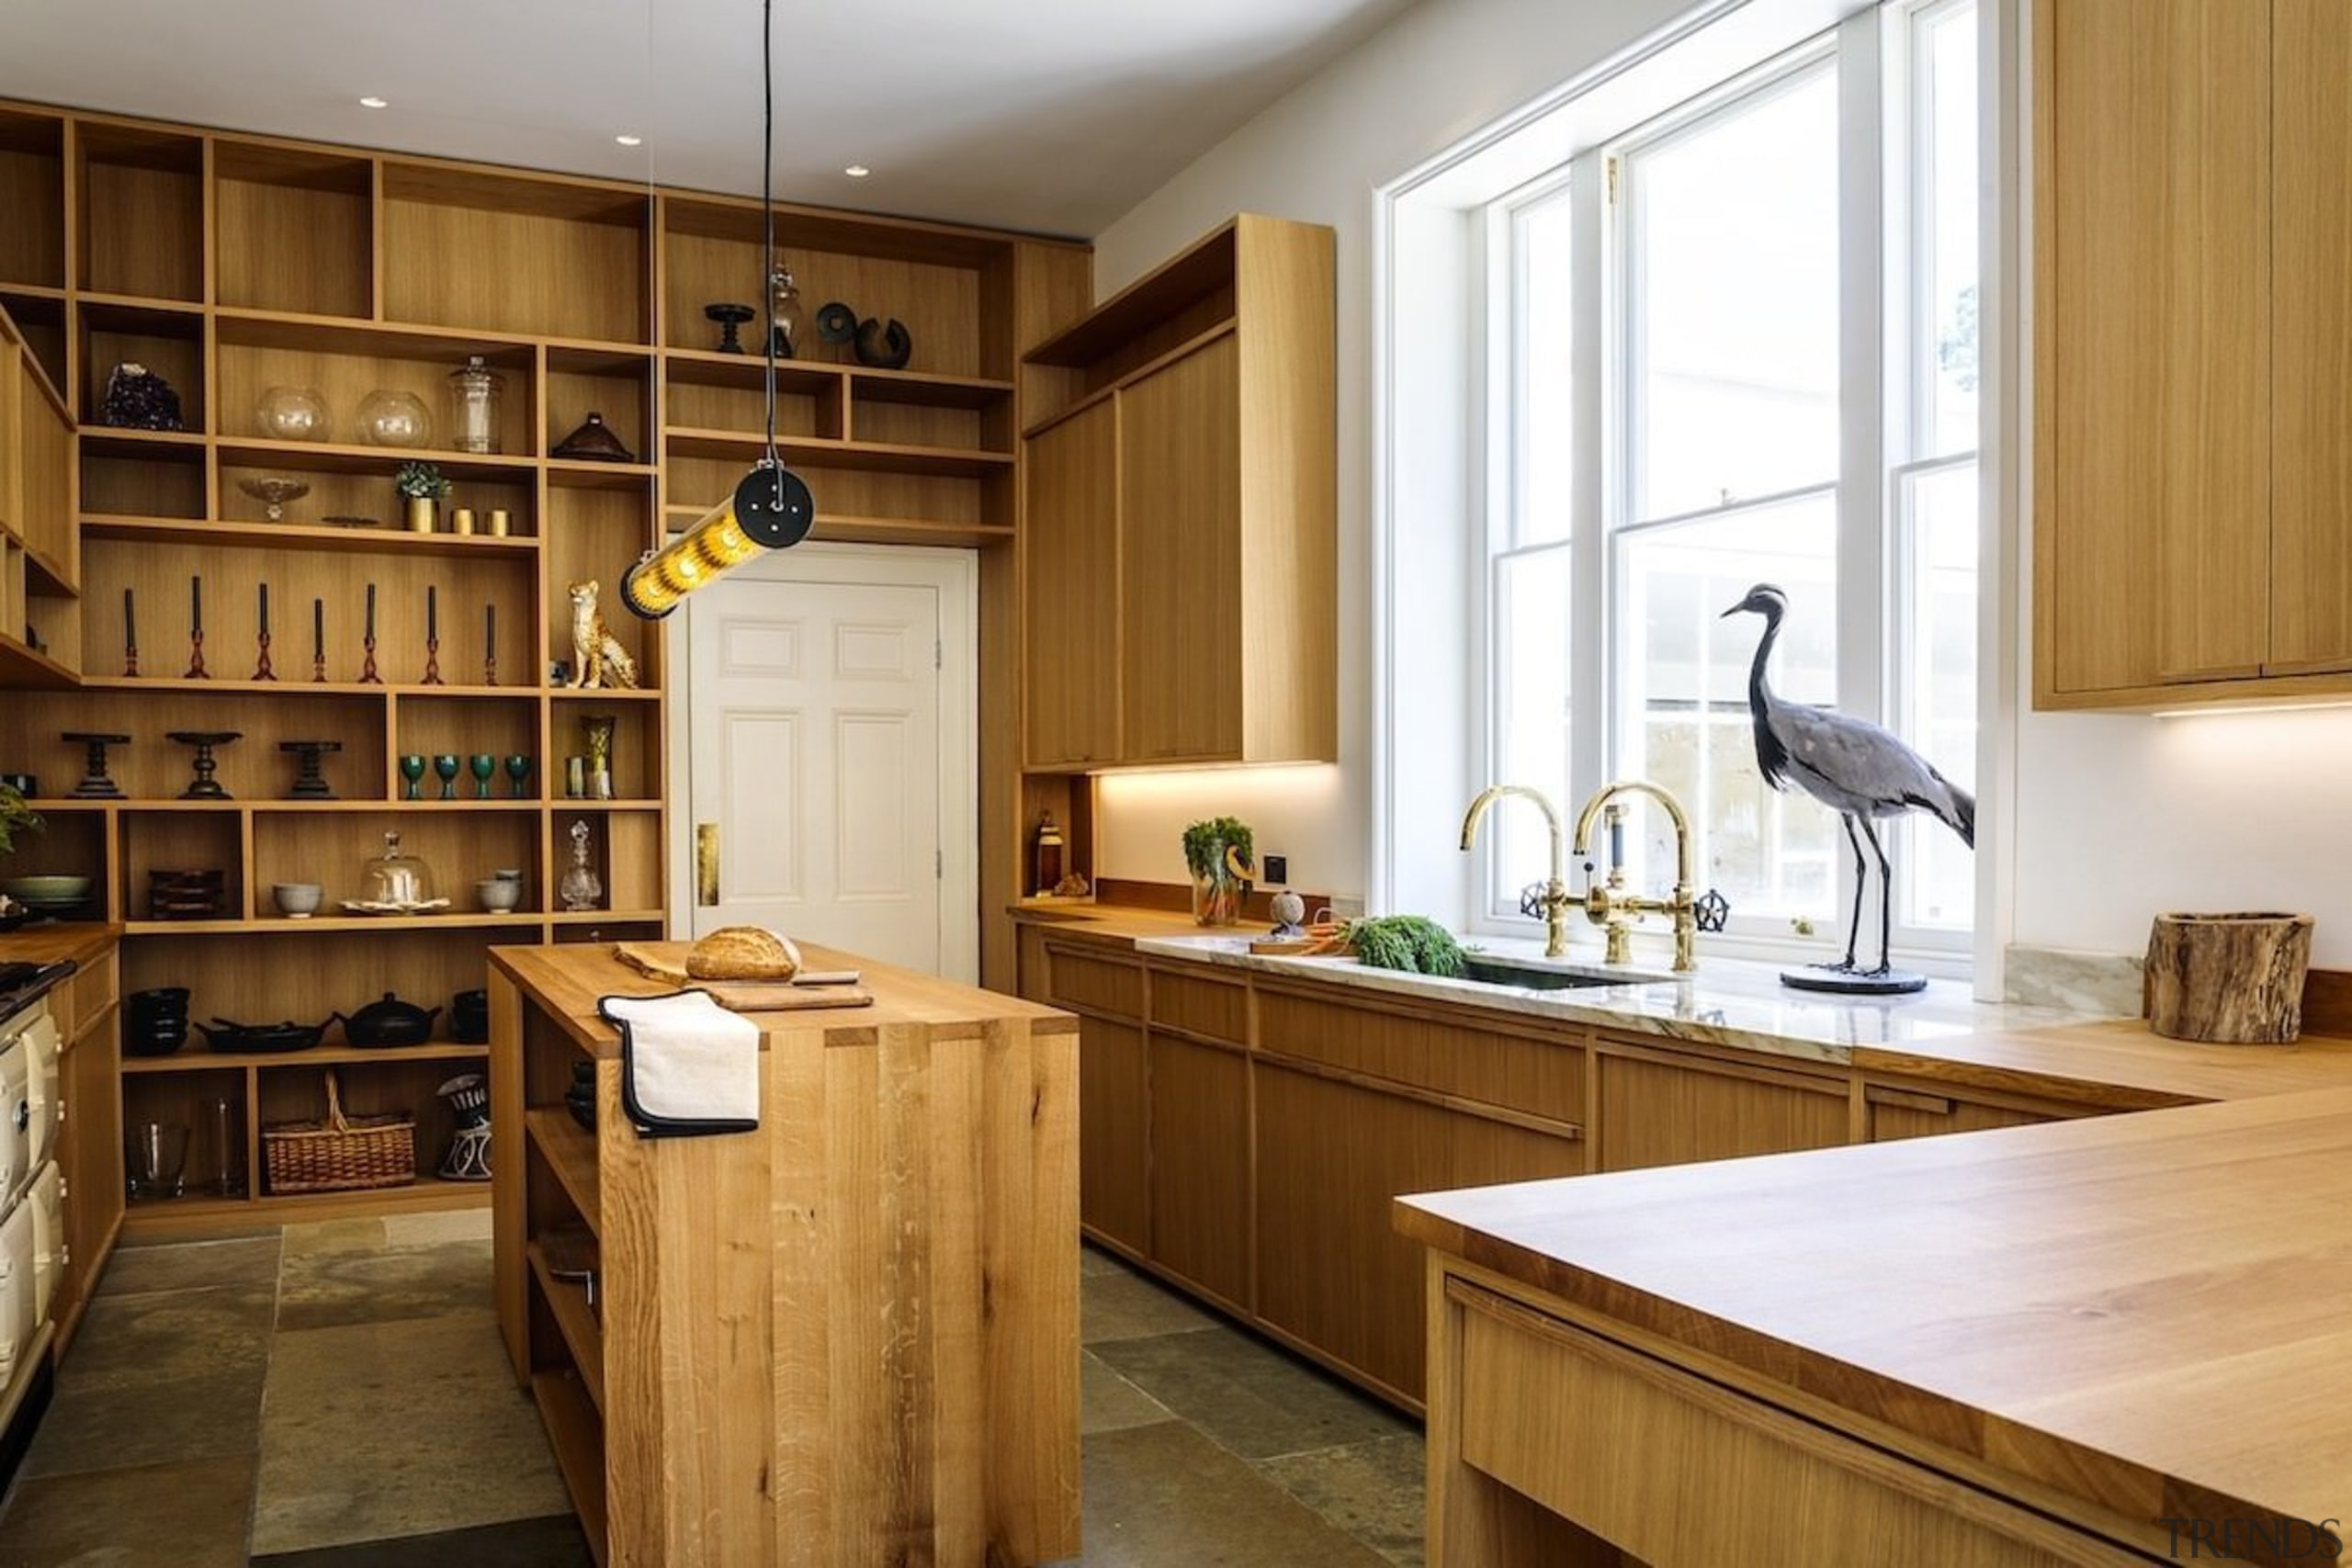 Open shelving is a great way to create cabinetry, countertop, cuisine classique, interior design, kitchen, wood, brown, white